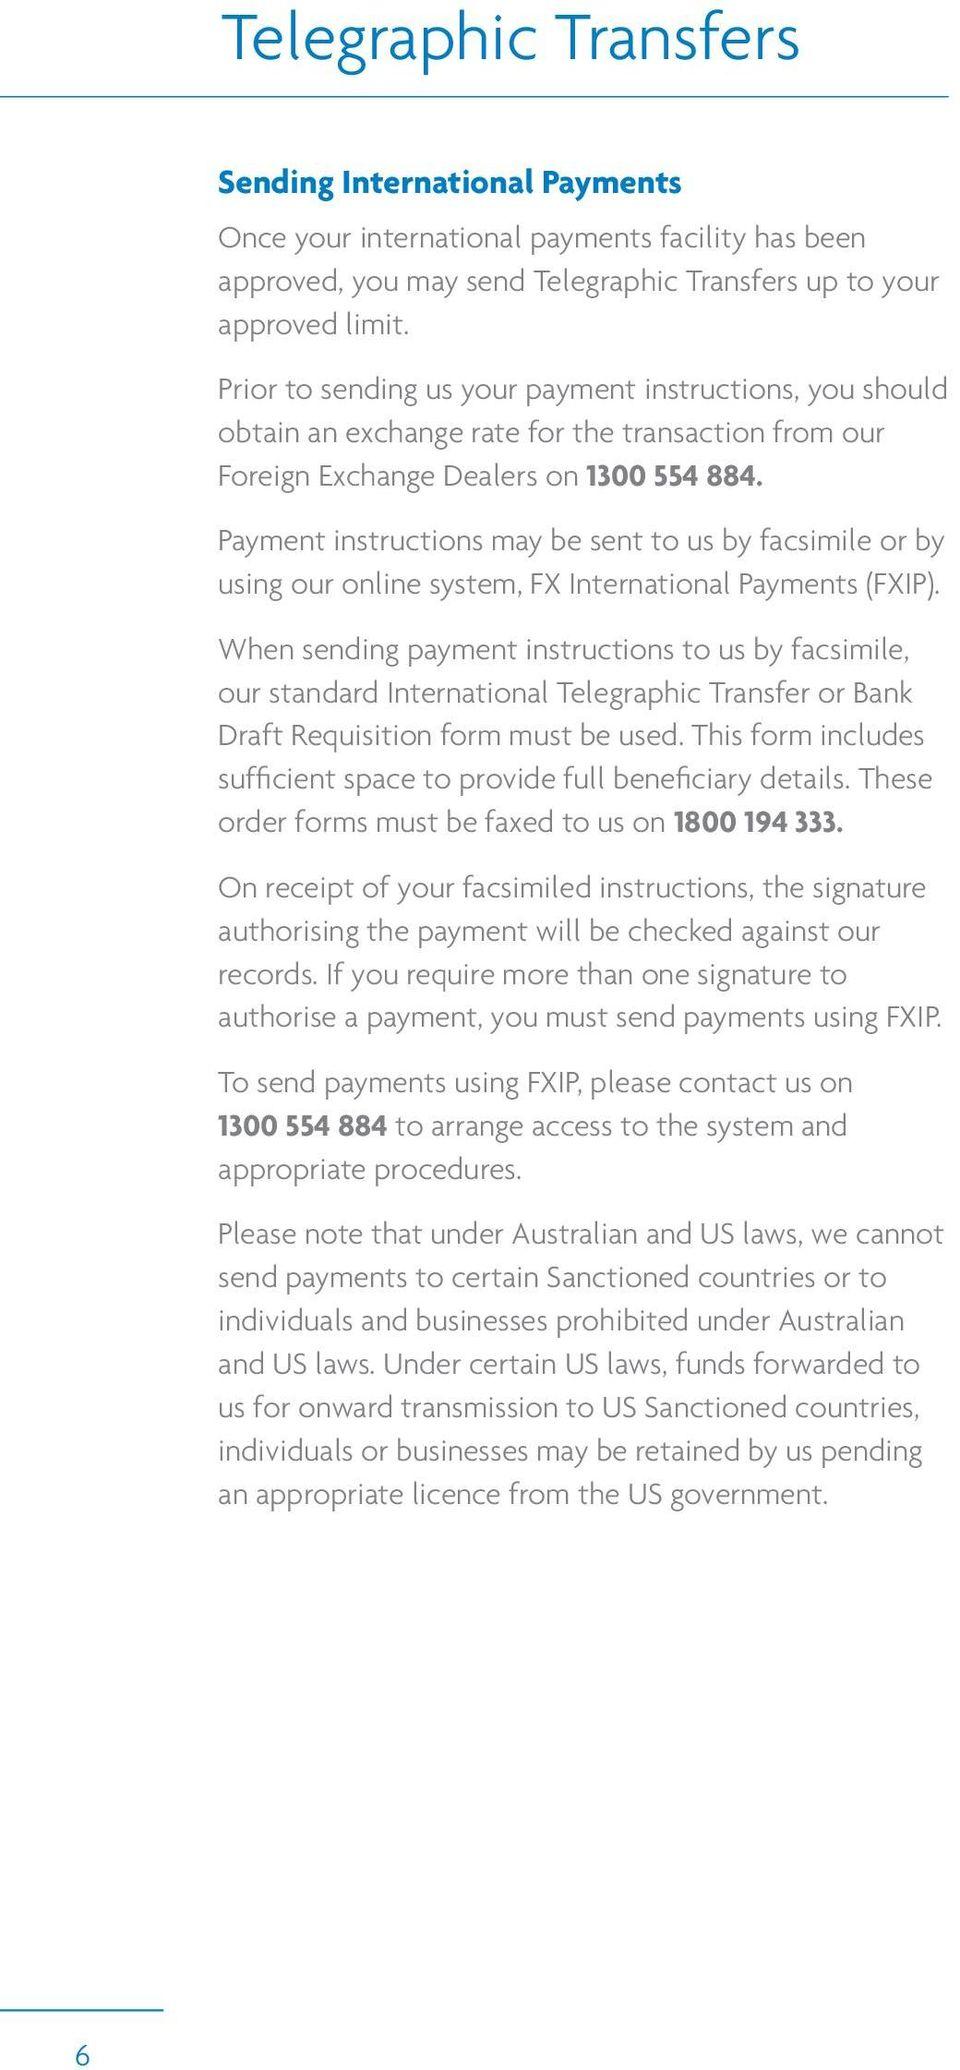 Payment instructions may be sent to us by facsimile or by using our online system, FX International Payments (FXIP).